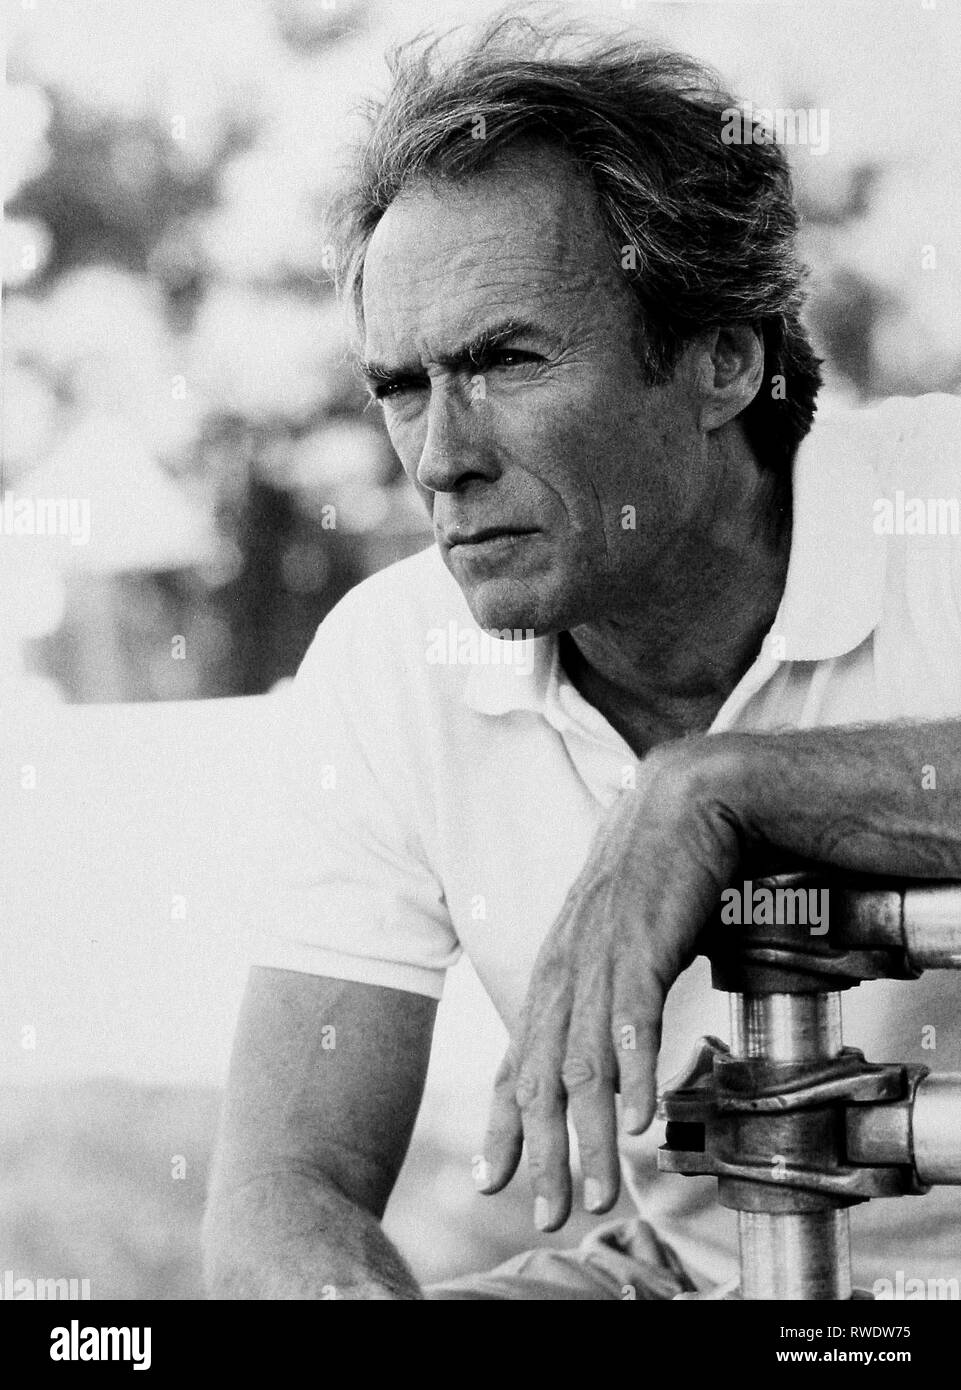 CLINT EASTWOOD, AMAZING STORIES:, 1985 - Stock Image